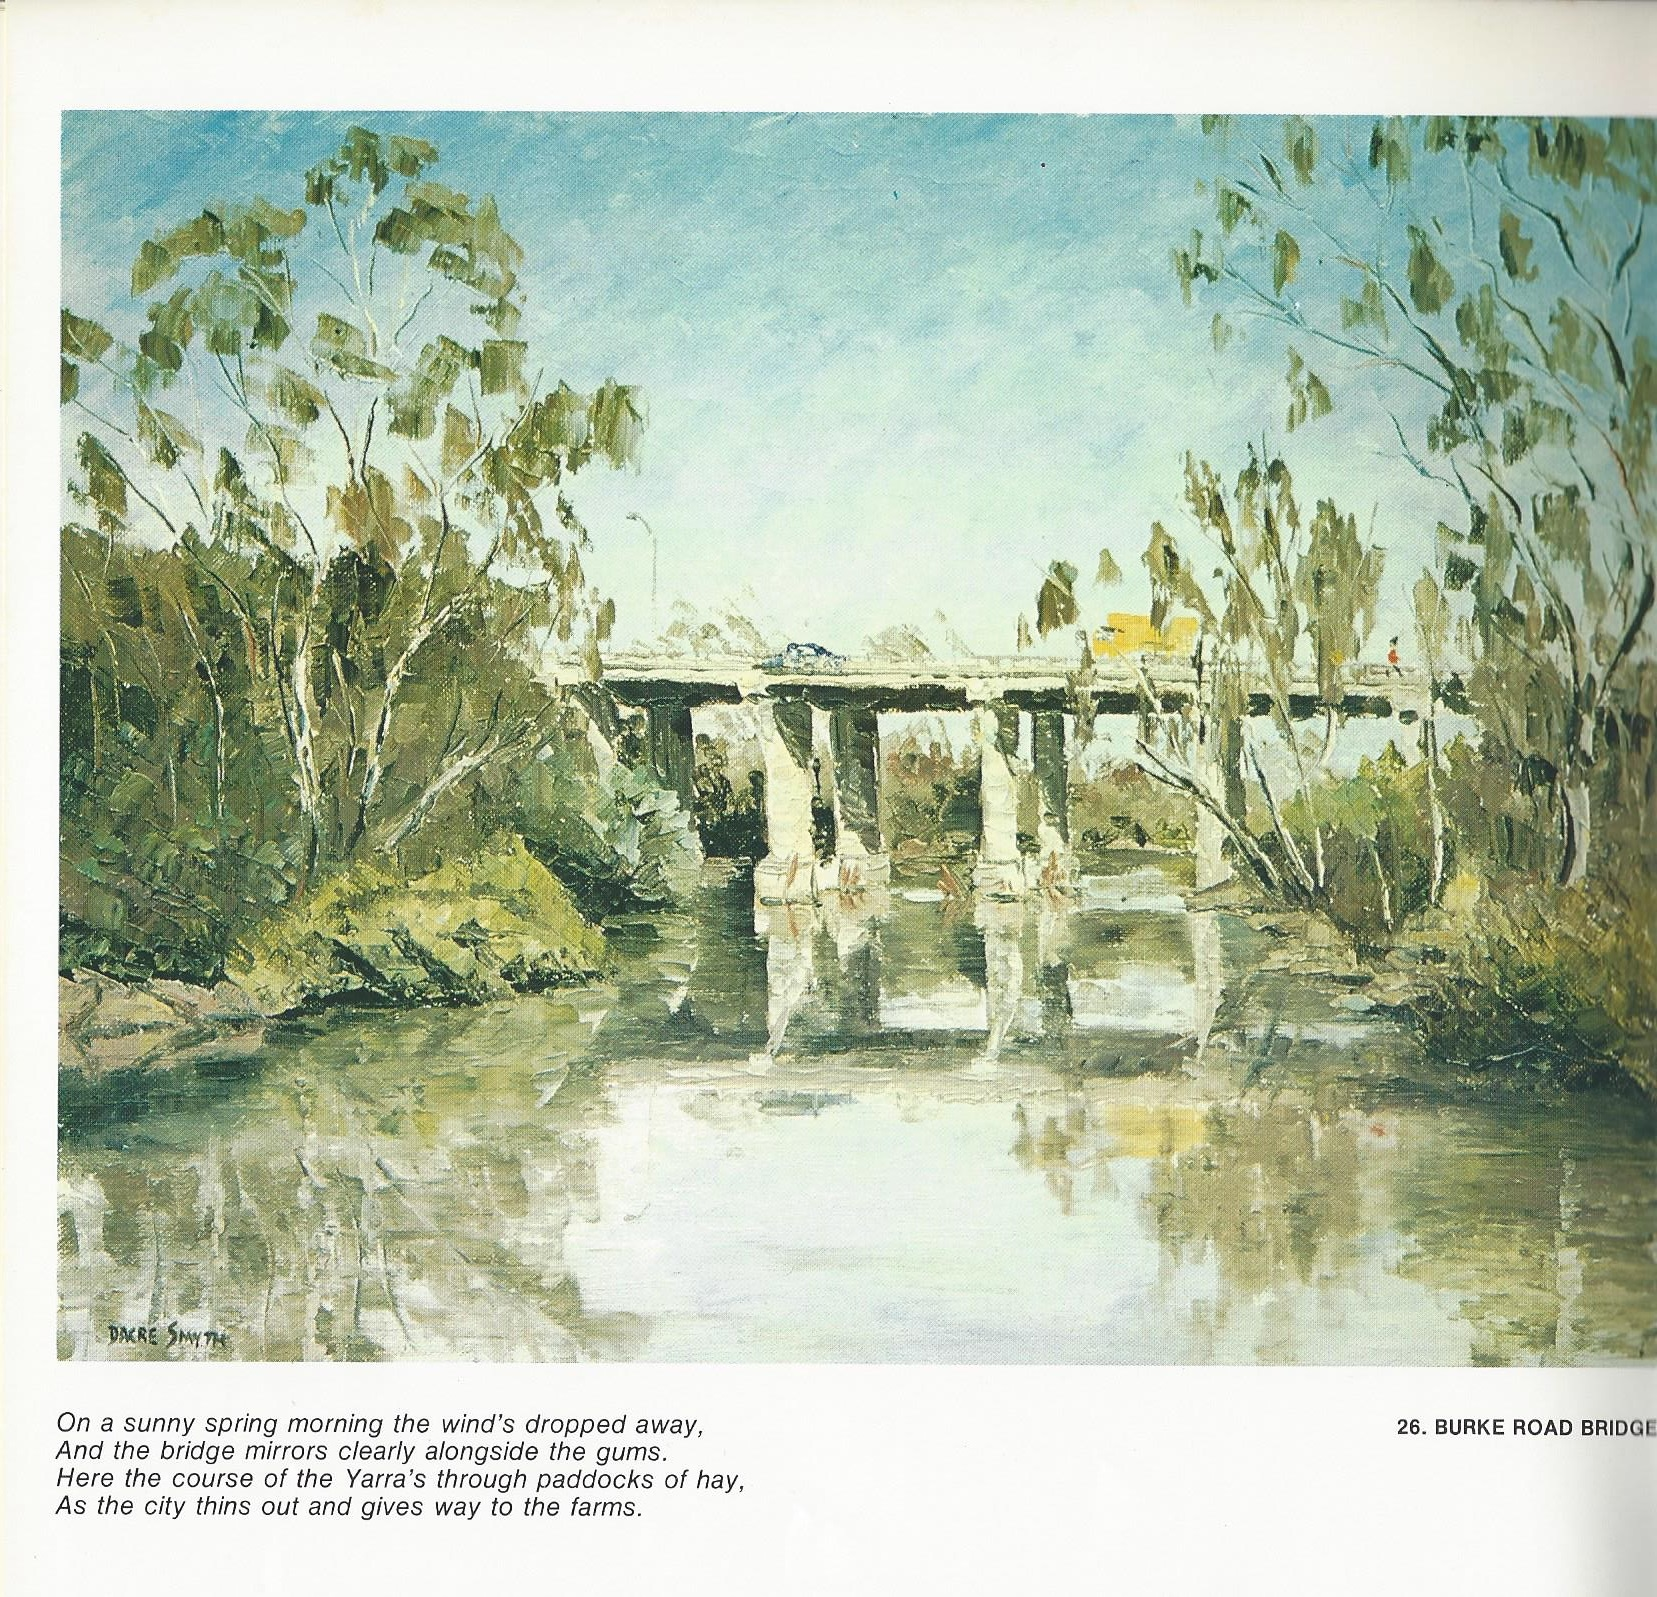 26. Burke Road Bridge